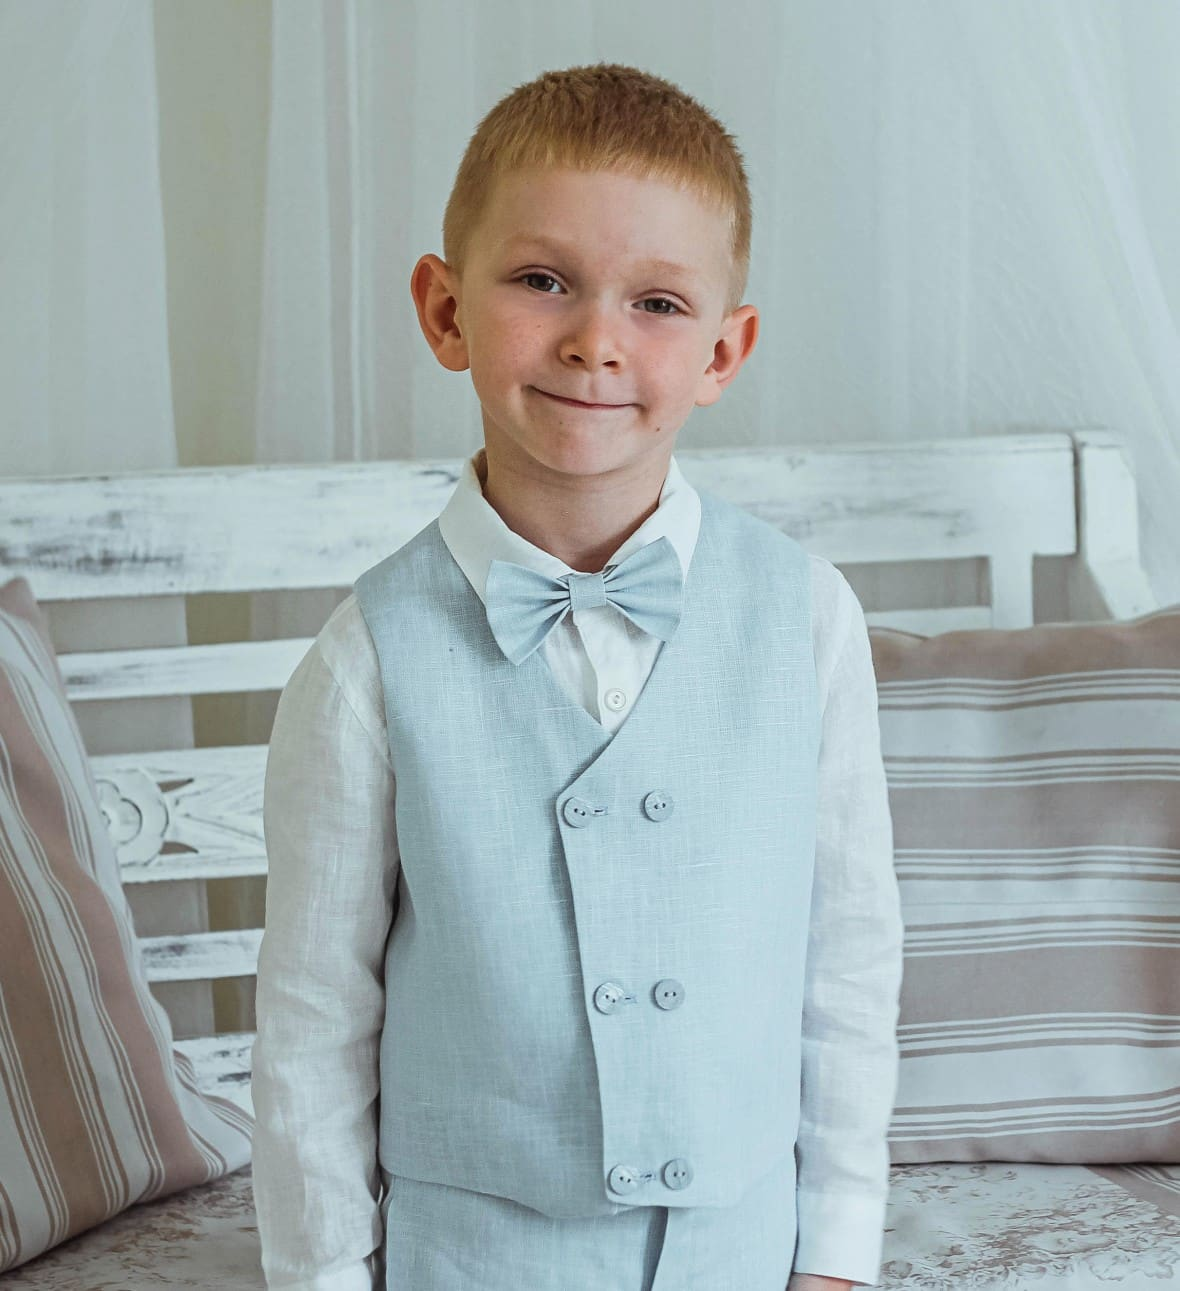 Ring Bearer Apparel and Accessories on Etsy | The Budget Savvy Bride